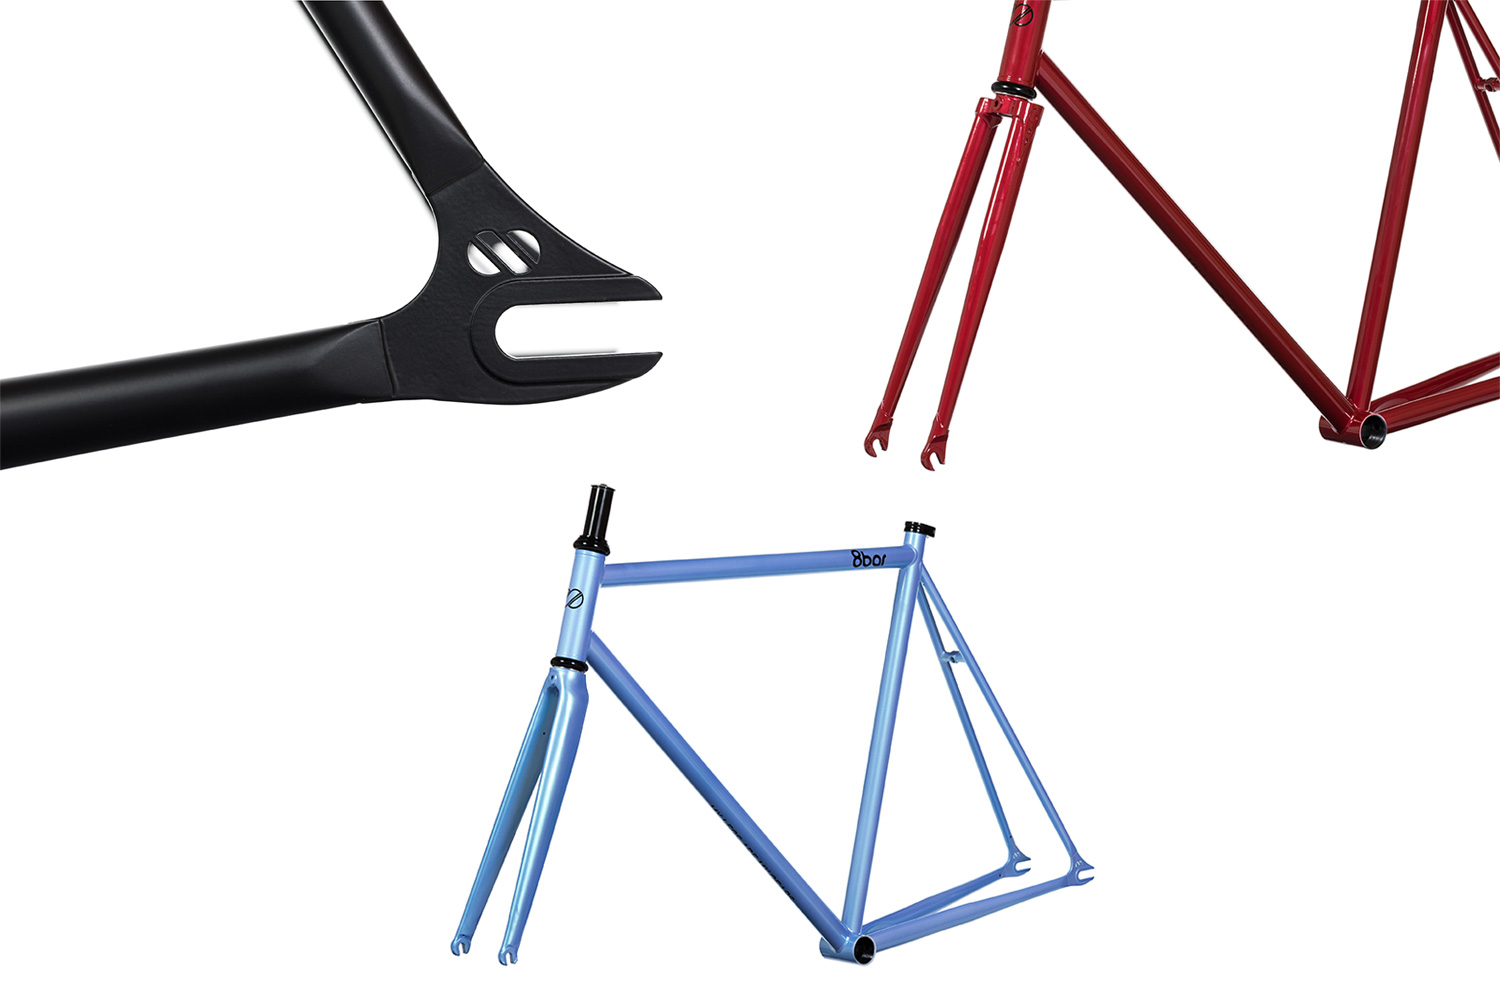 8bar fhain steel blog framesets 1500x1000 - The all new FHAIN V3 and FHAIN STEEL